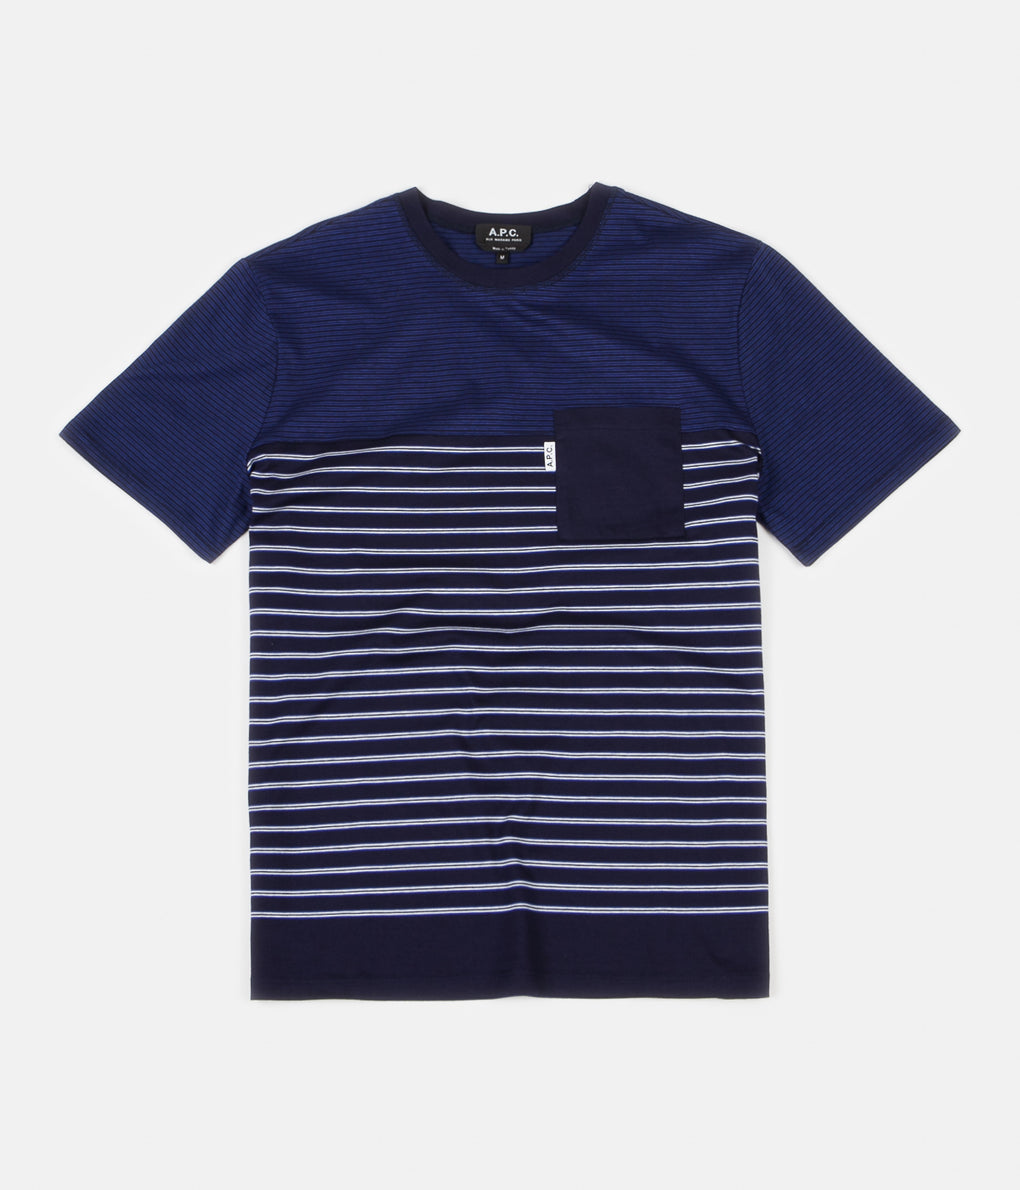 A.P.C. Joan T-Shirt - Dark Navy